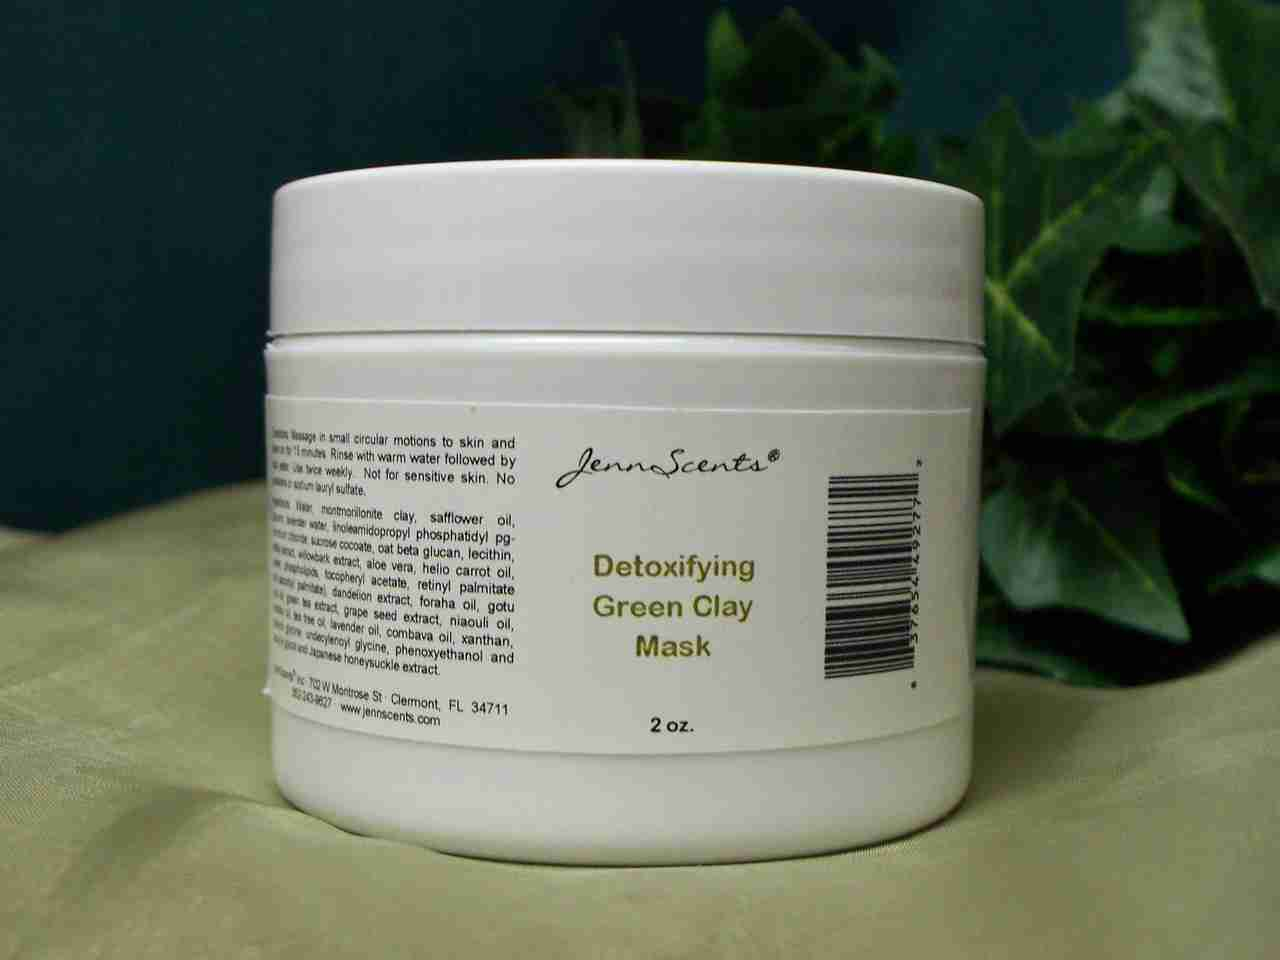 Detoxifying Green Clay Mask